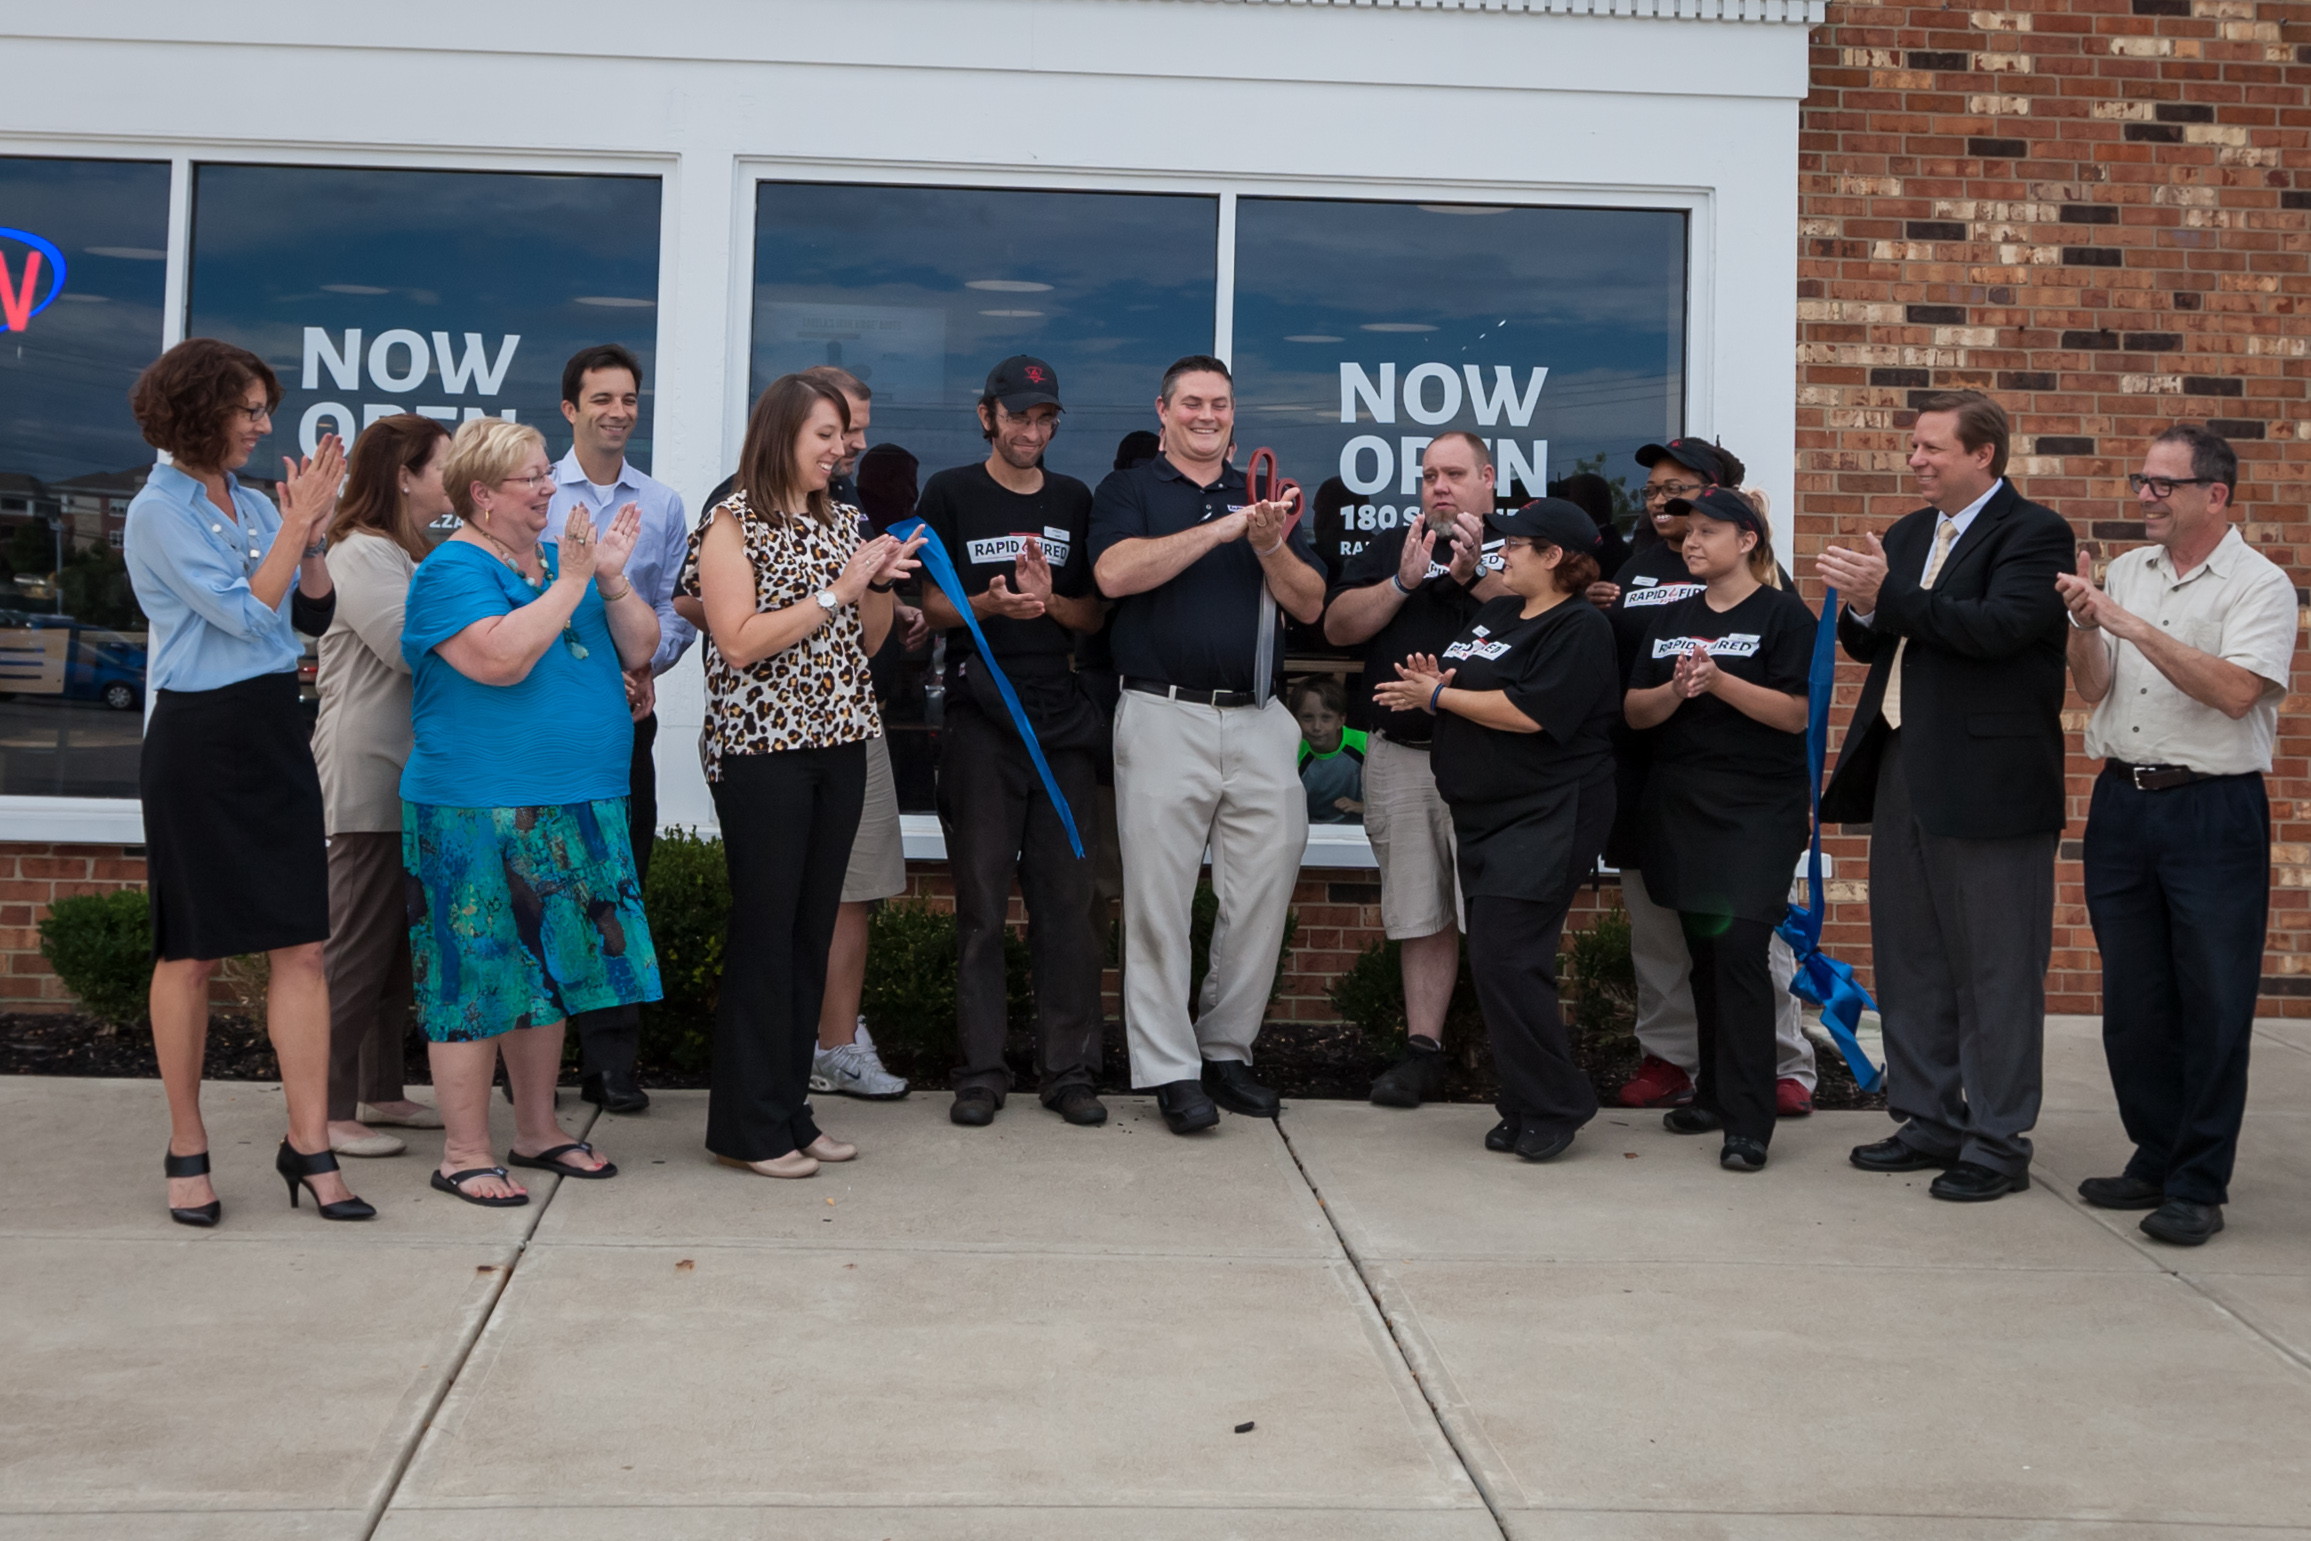 Thirteen people in front of a business Grand Opening clapping